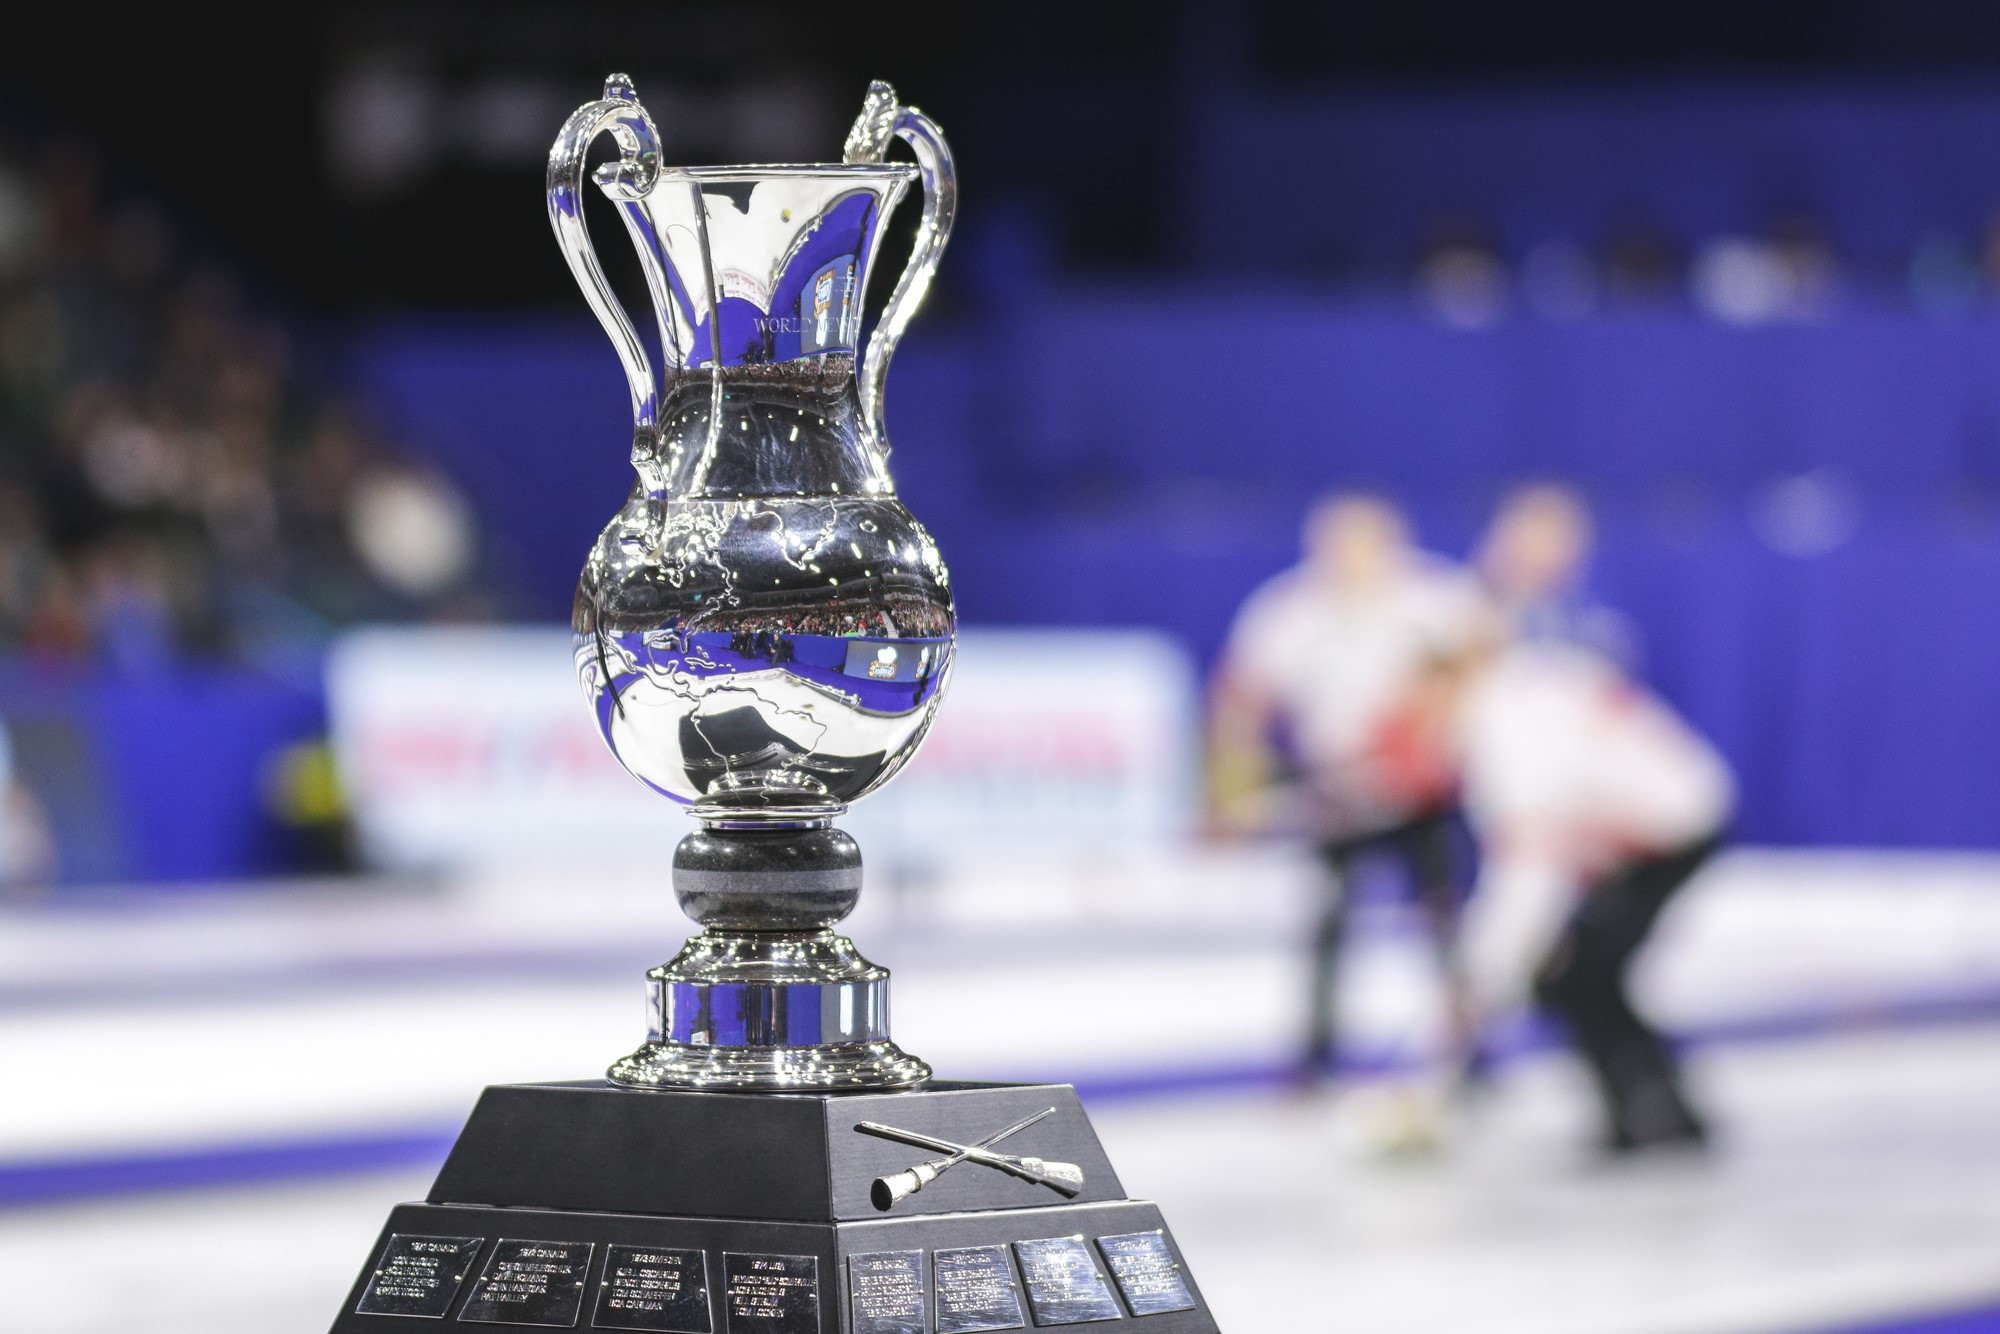 Ottawa awarded 2021 World Men's Curling Championship